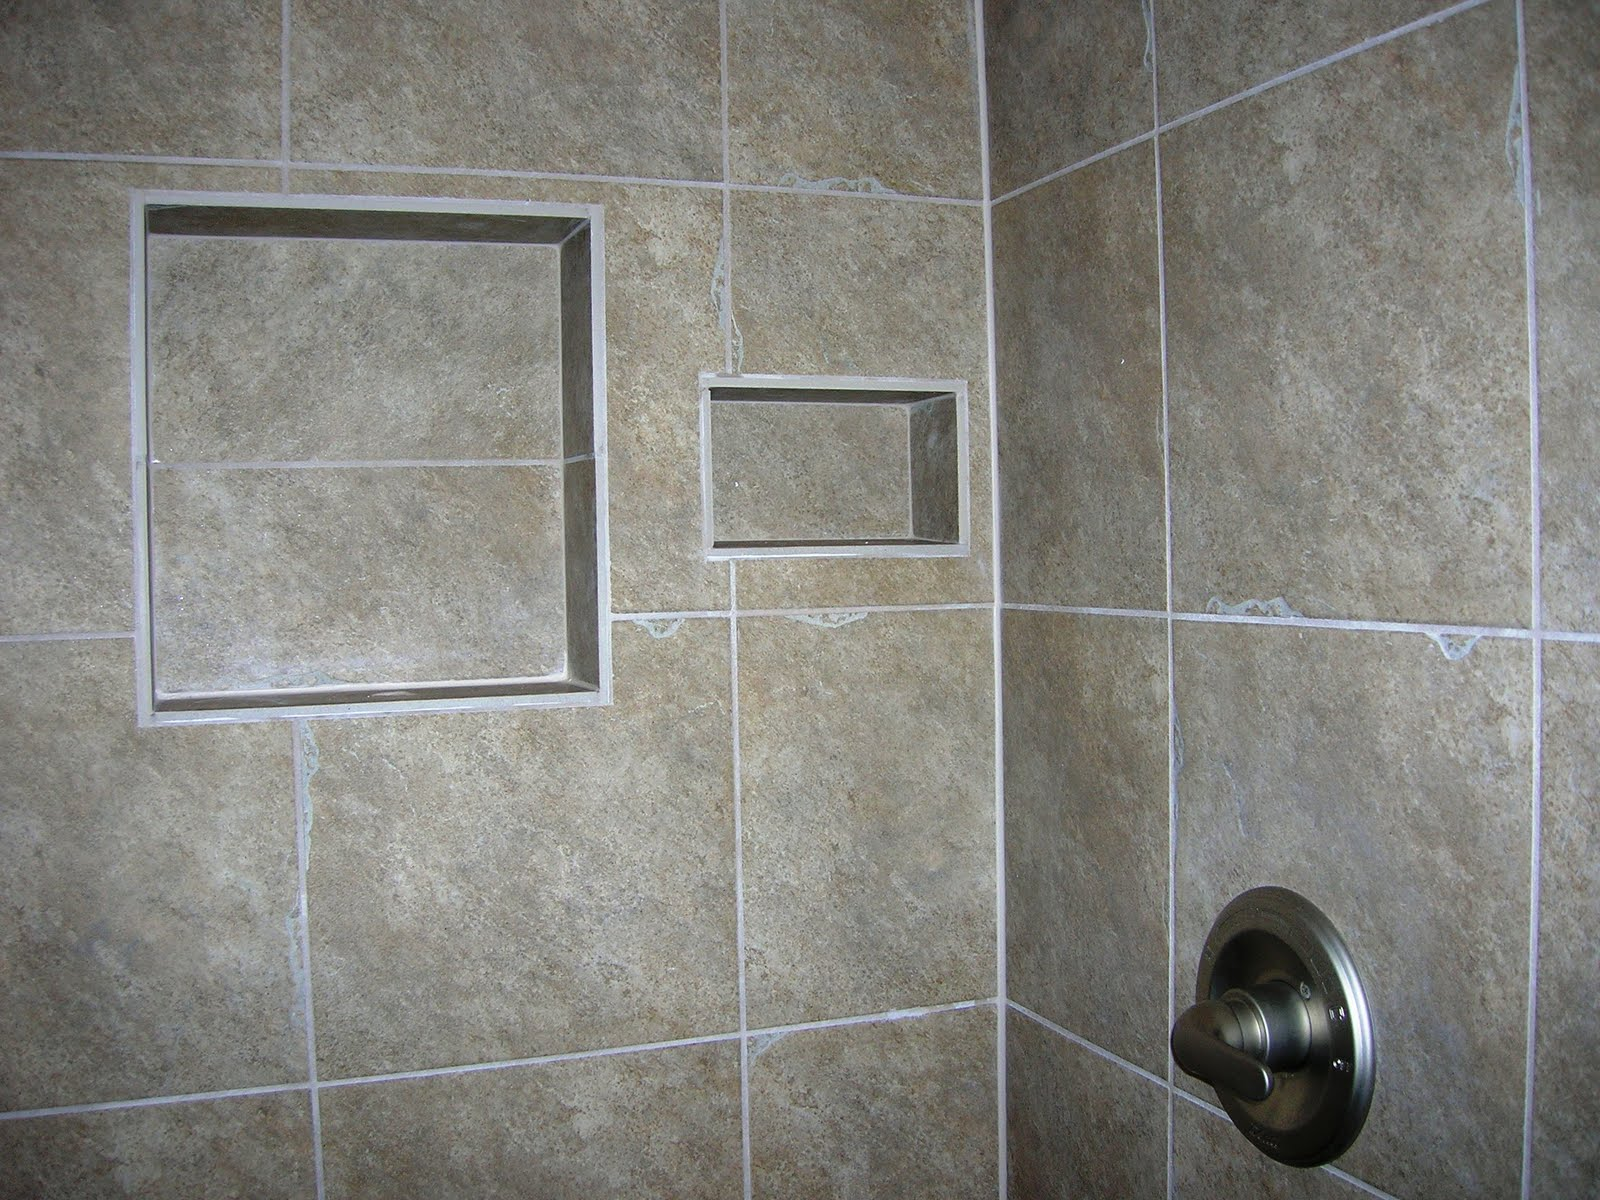 Modern bathroom wall tile designs - Bathroom Bathroom Tile Shower Ideas Pictures Tile Shower